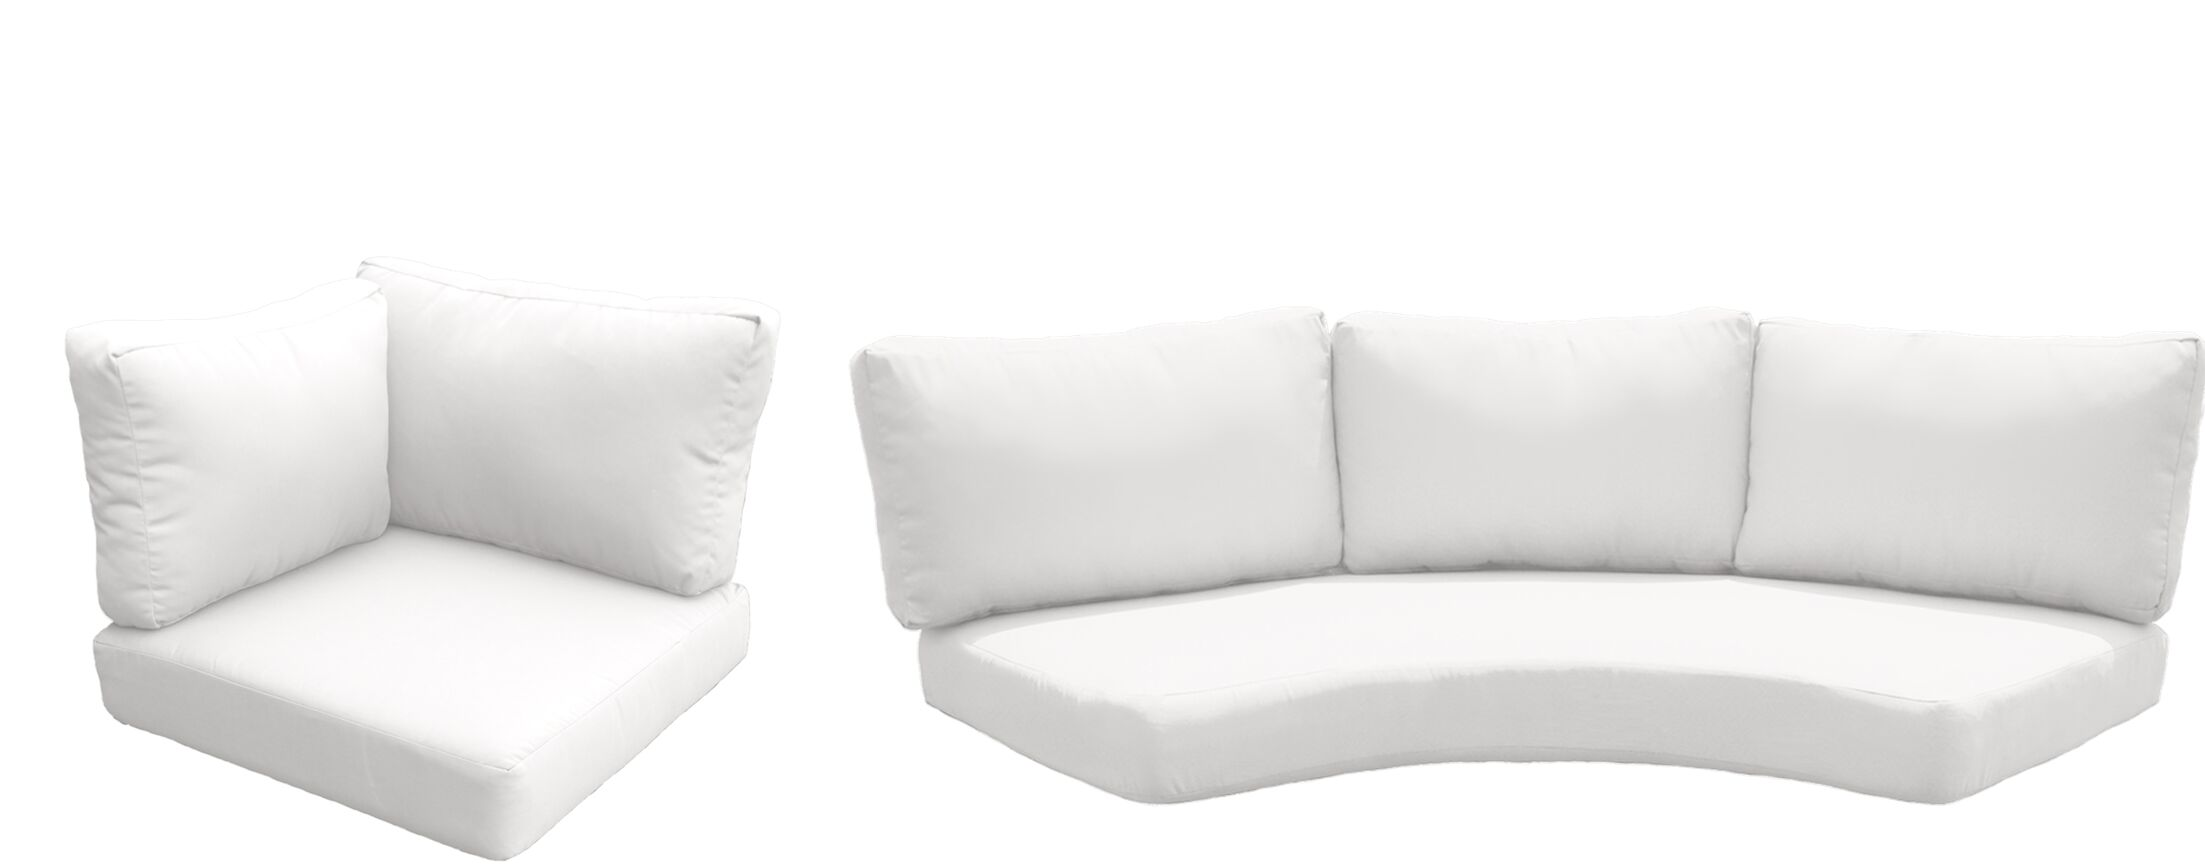 Barbados Outdoor Replacement Cushion Set Fabric: White